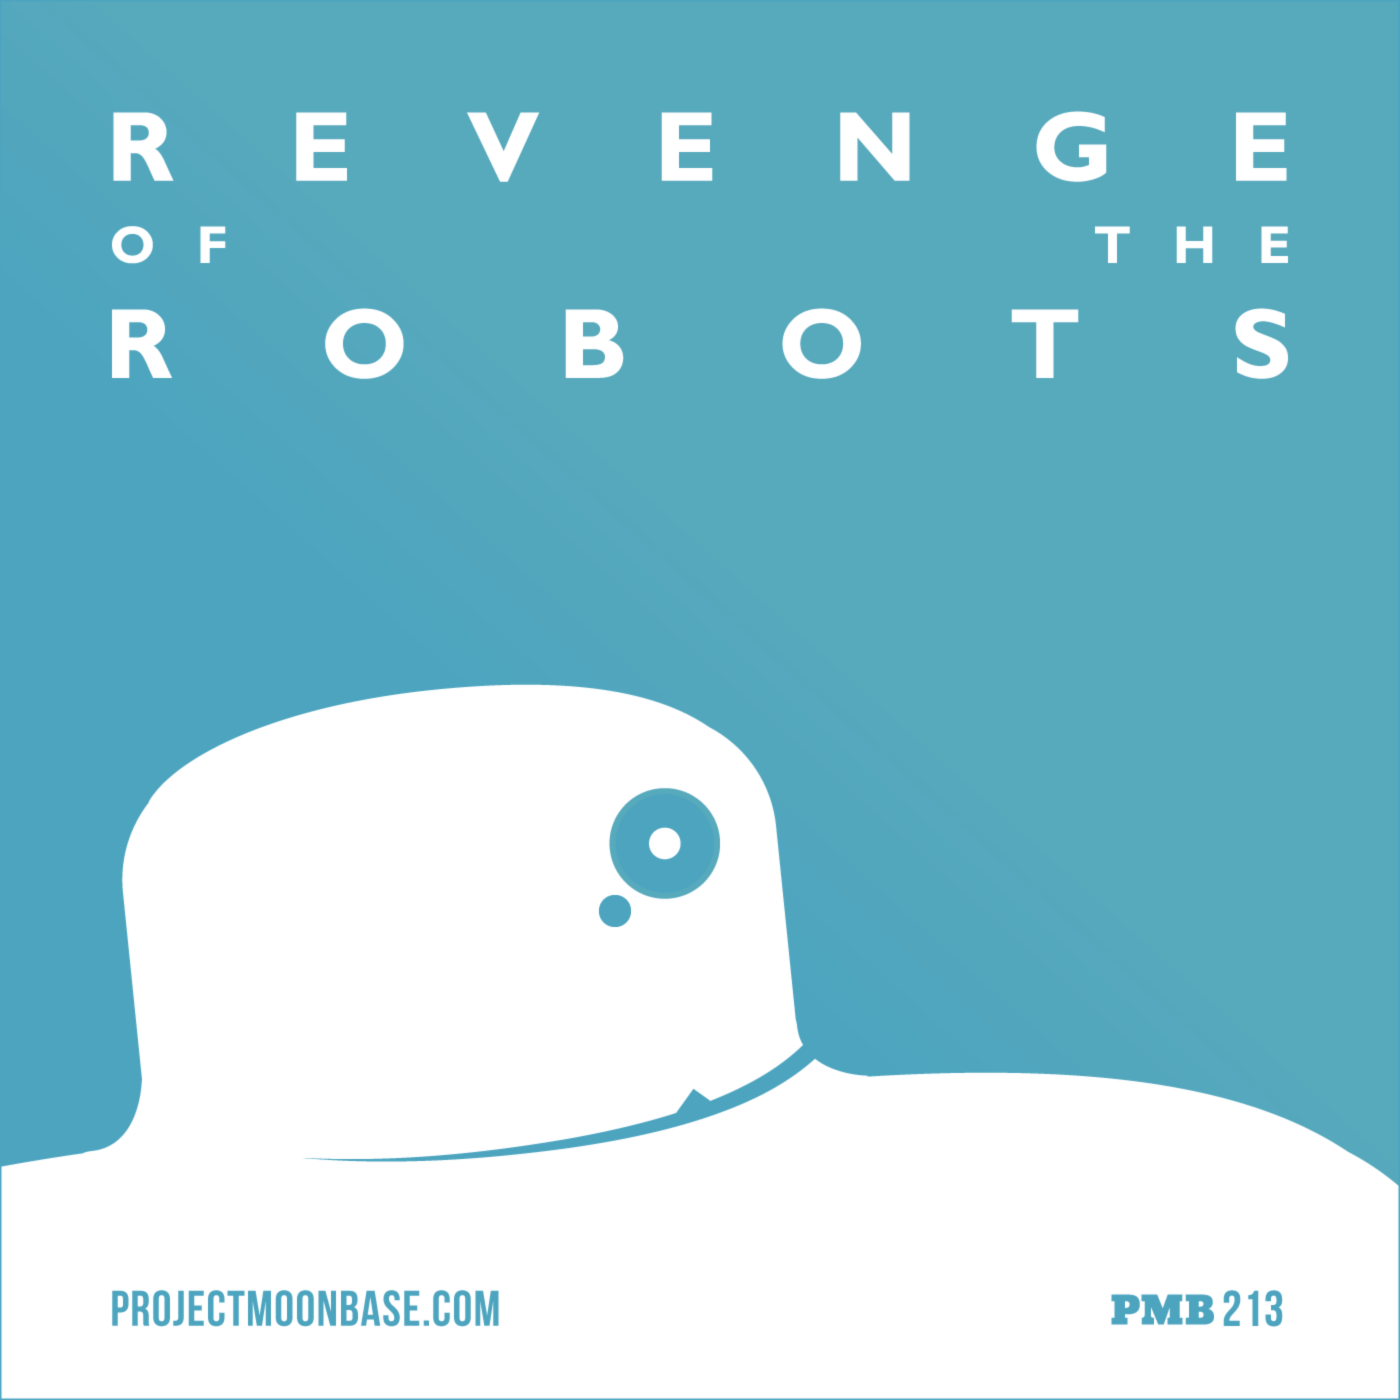 PMB213: Revenge of the Robots